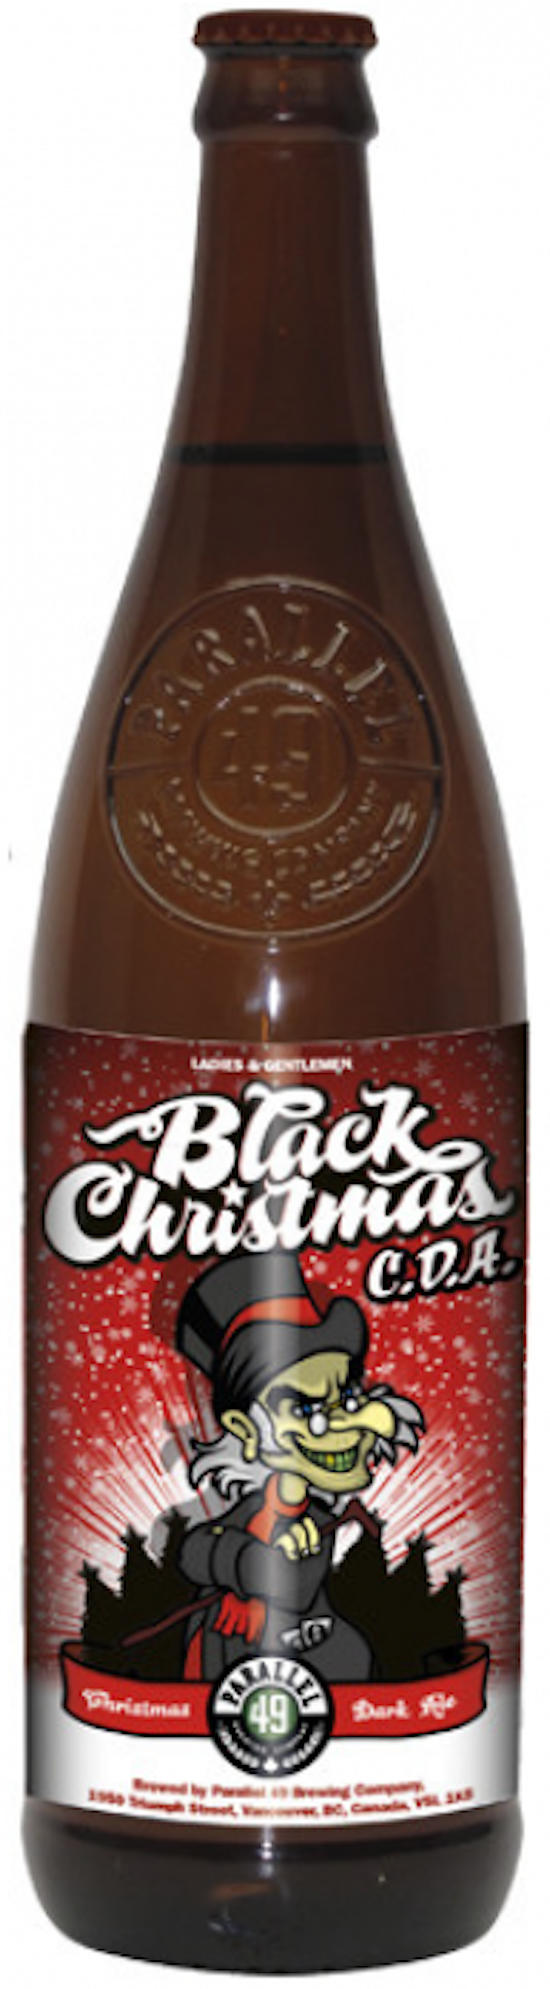 parallel-49-brewing-black-christmas_1476454580